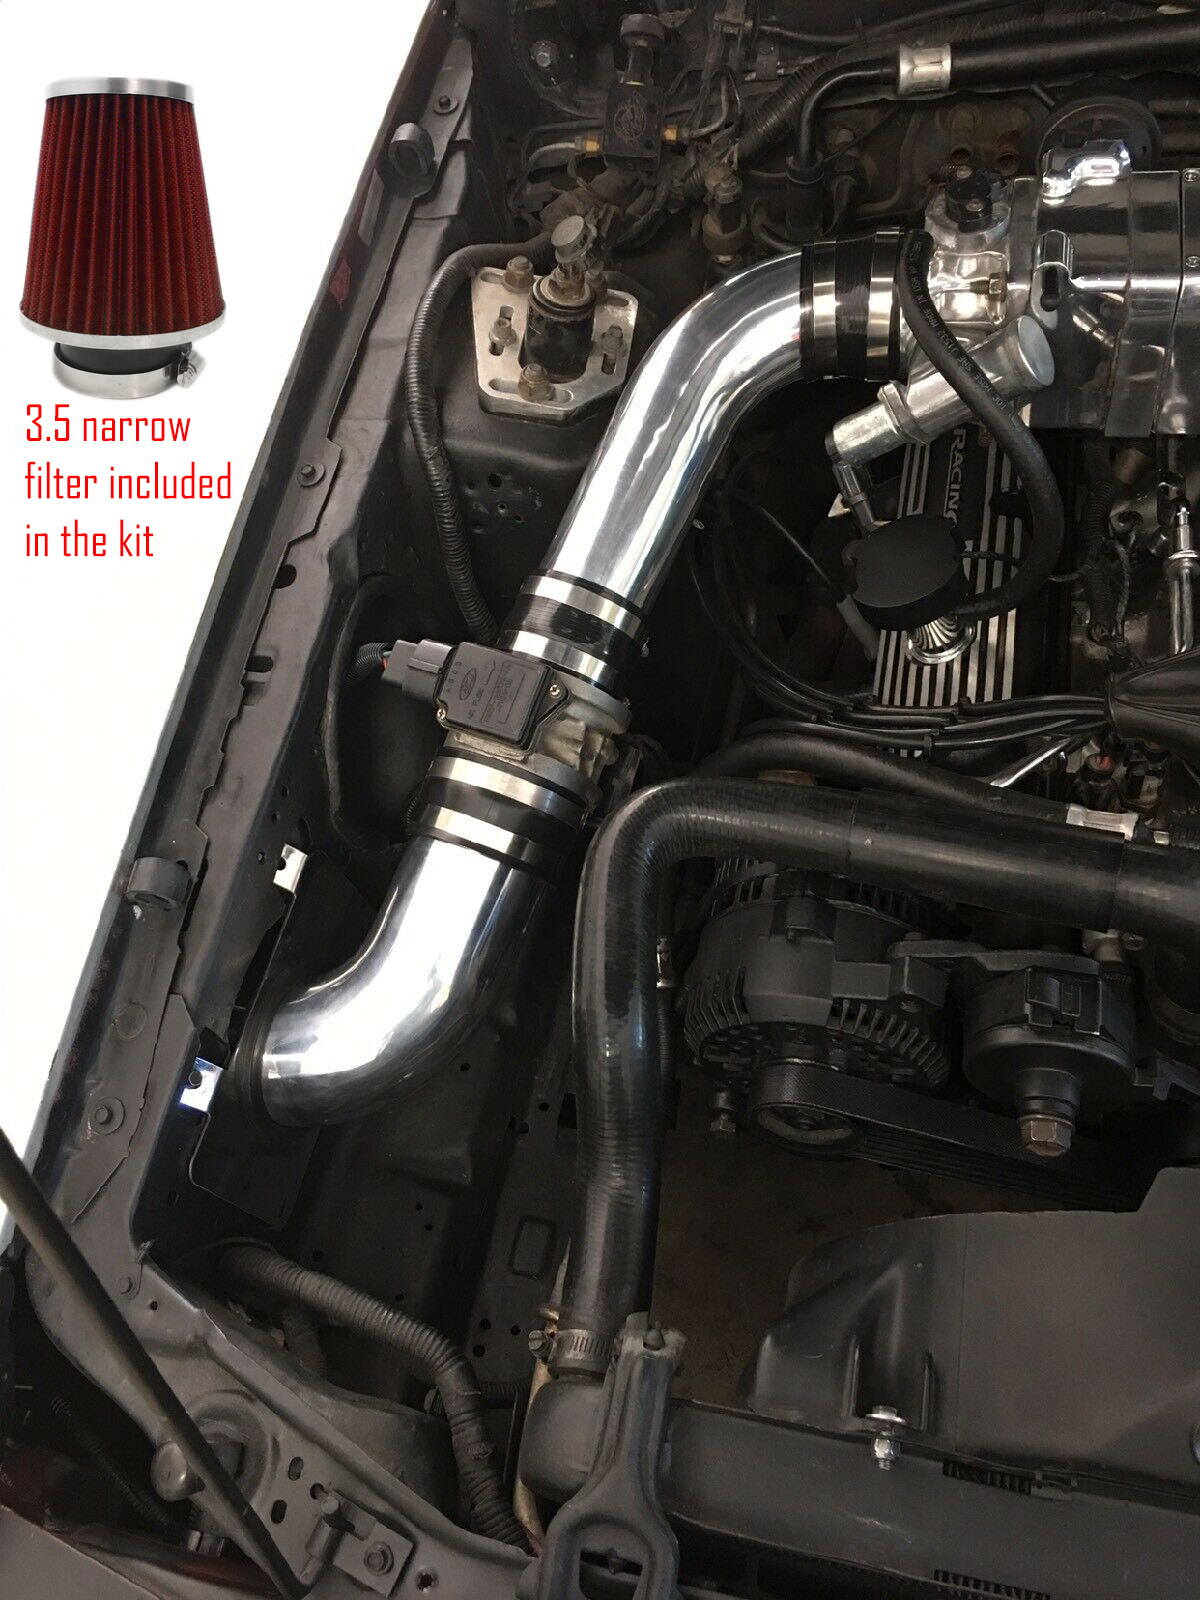 1989 mustang fuel filter red heat shield cold air intake kit for 1989 1993 ford mustang 5 0  cold air intake kit for 1989 1993